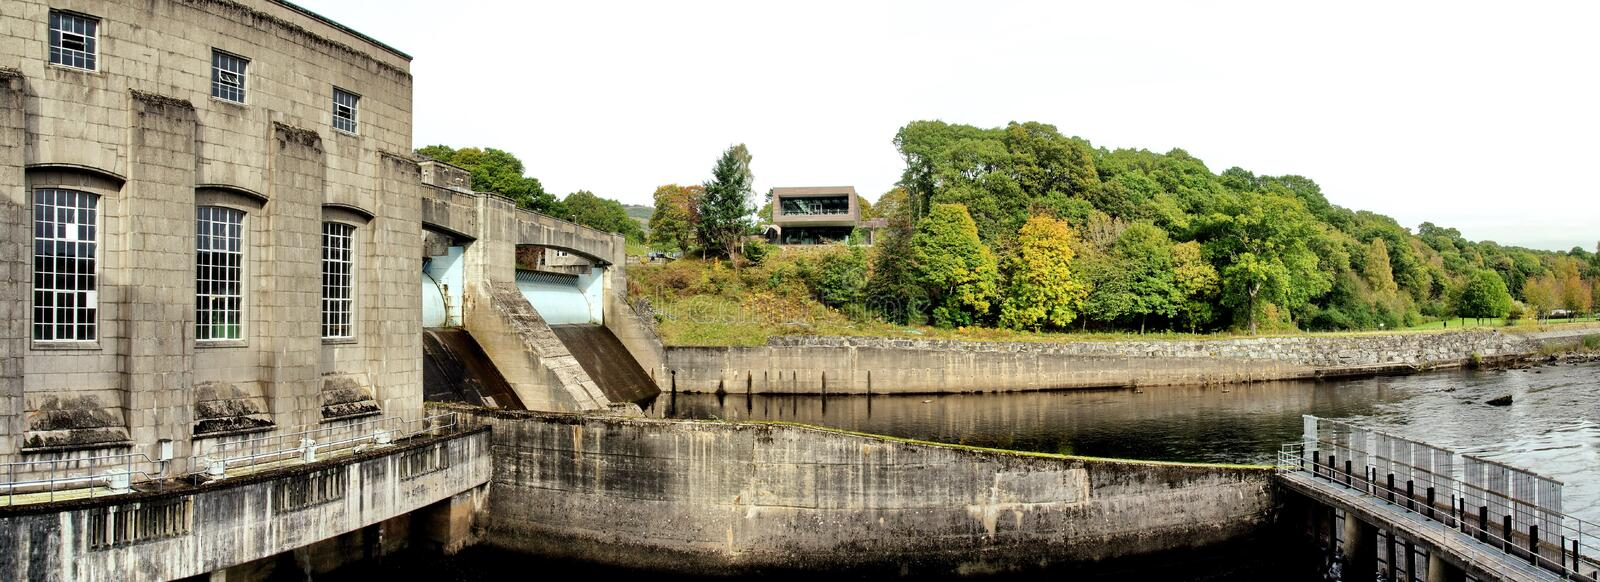 Hydro Electric Dam and Fish Ladder at Pitlochry royalty free stock images